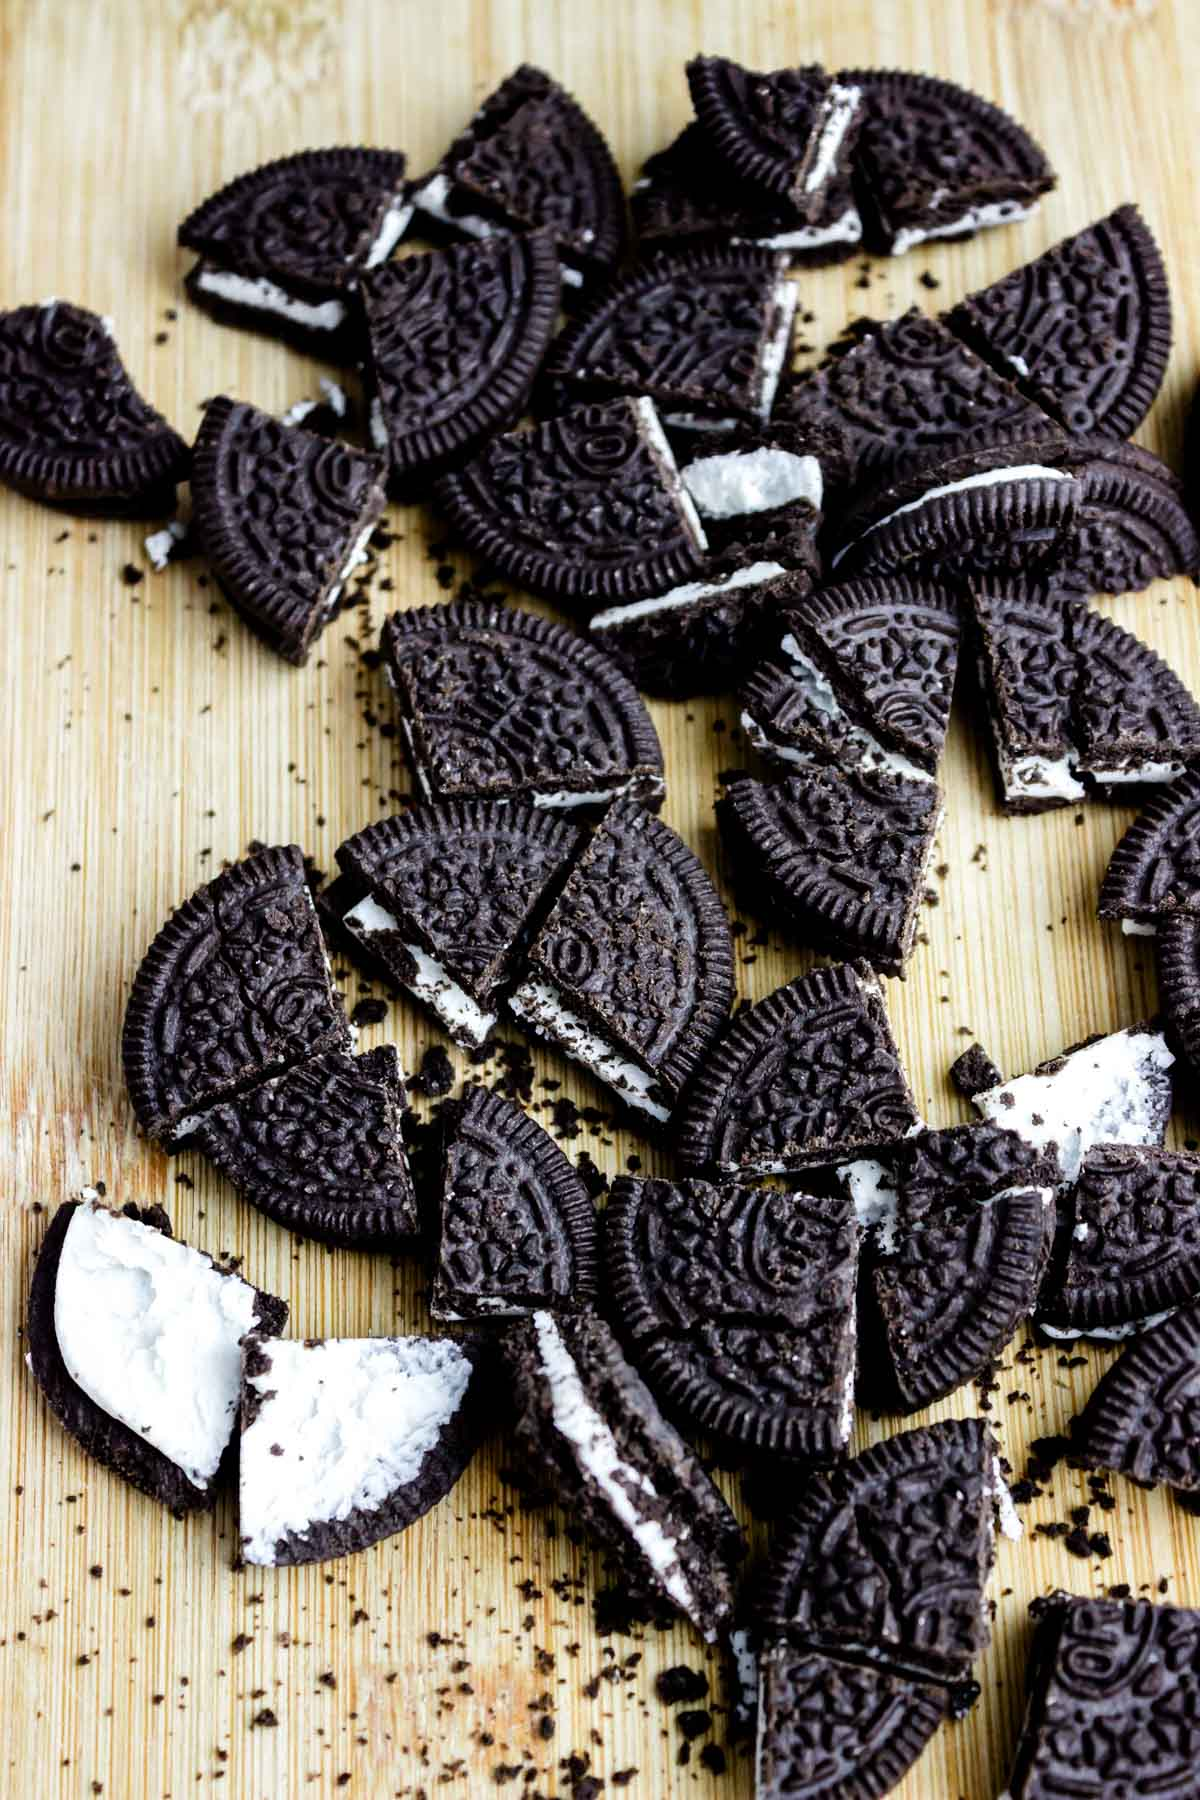 a bunch of crumbled Oreo cookies with creamy filling crushed on a table